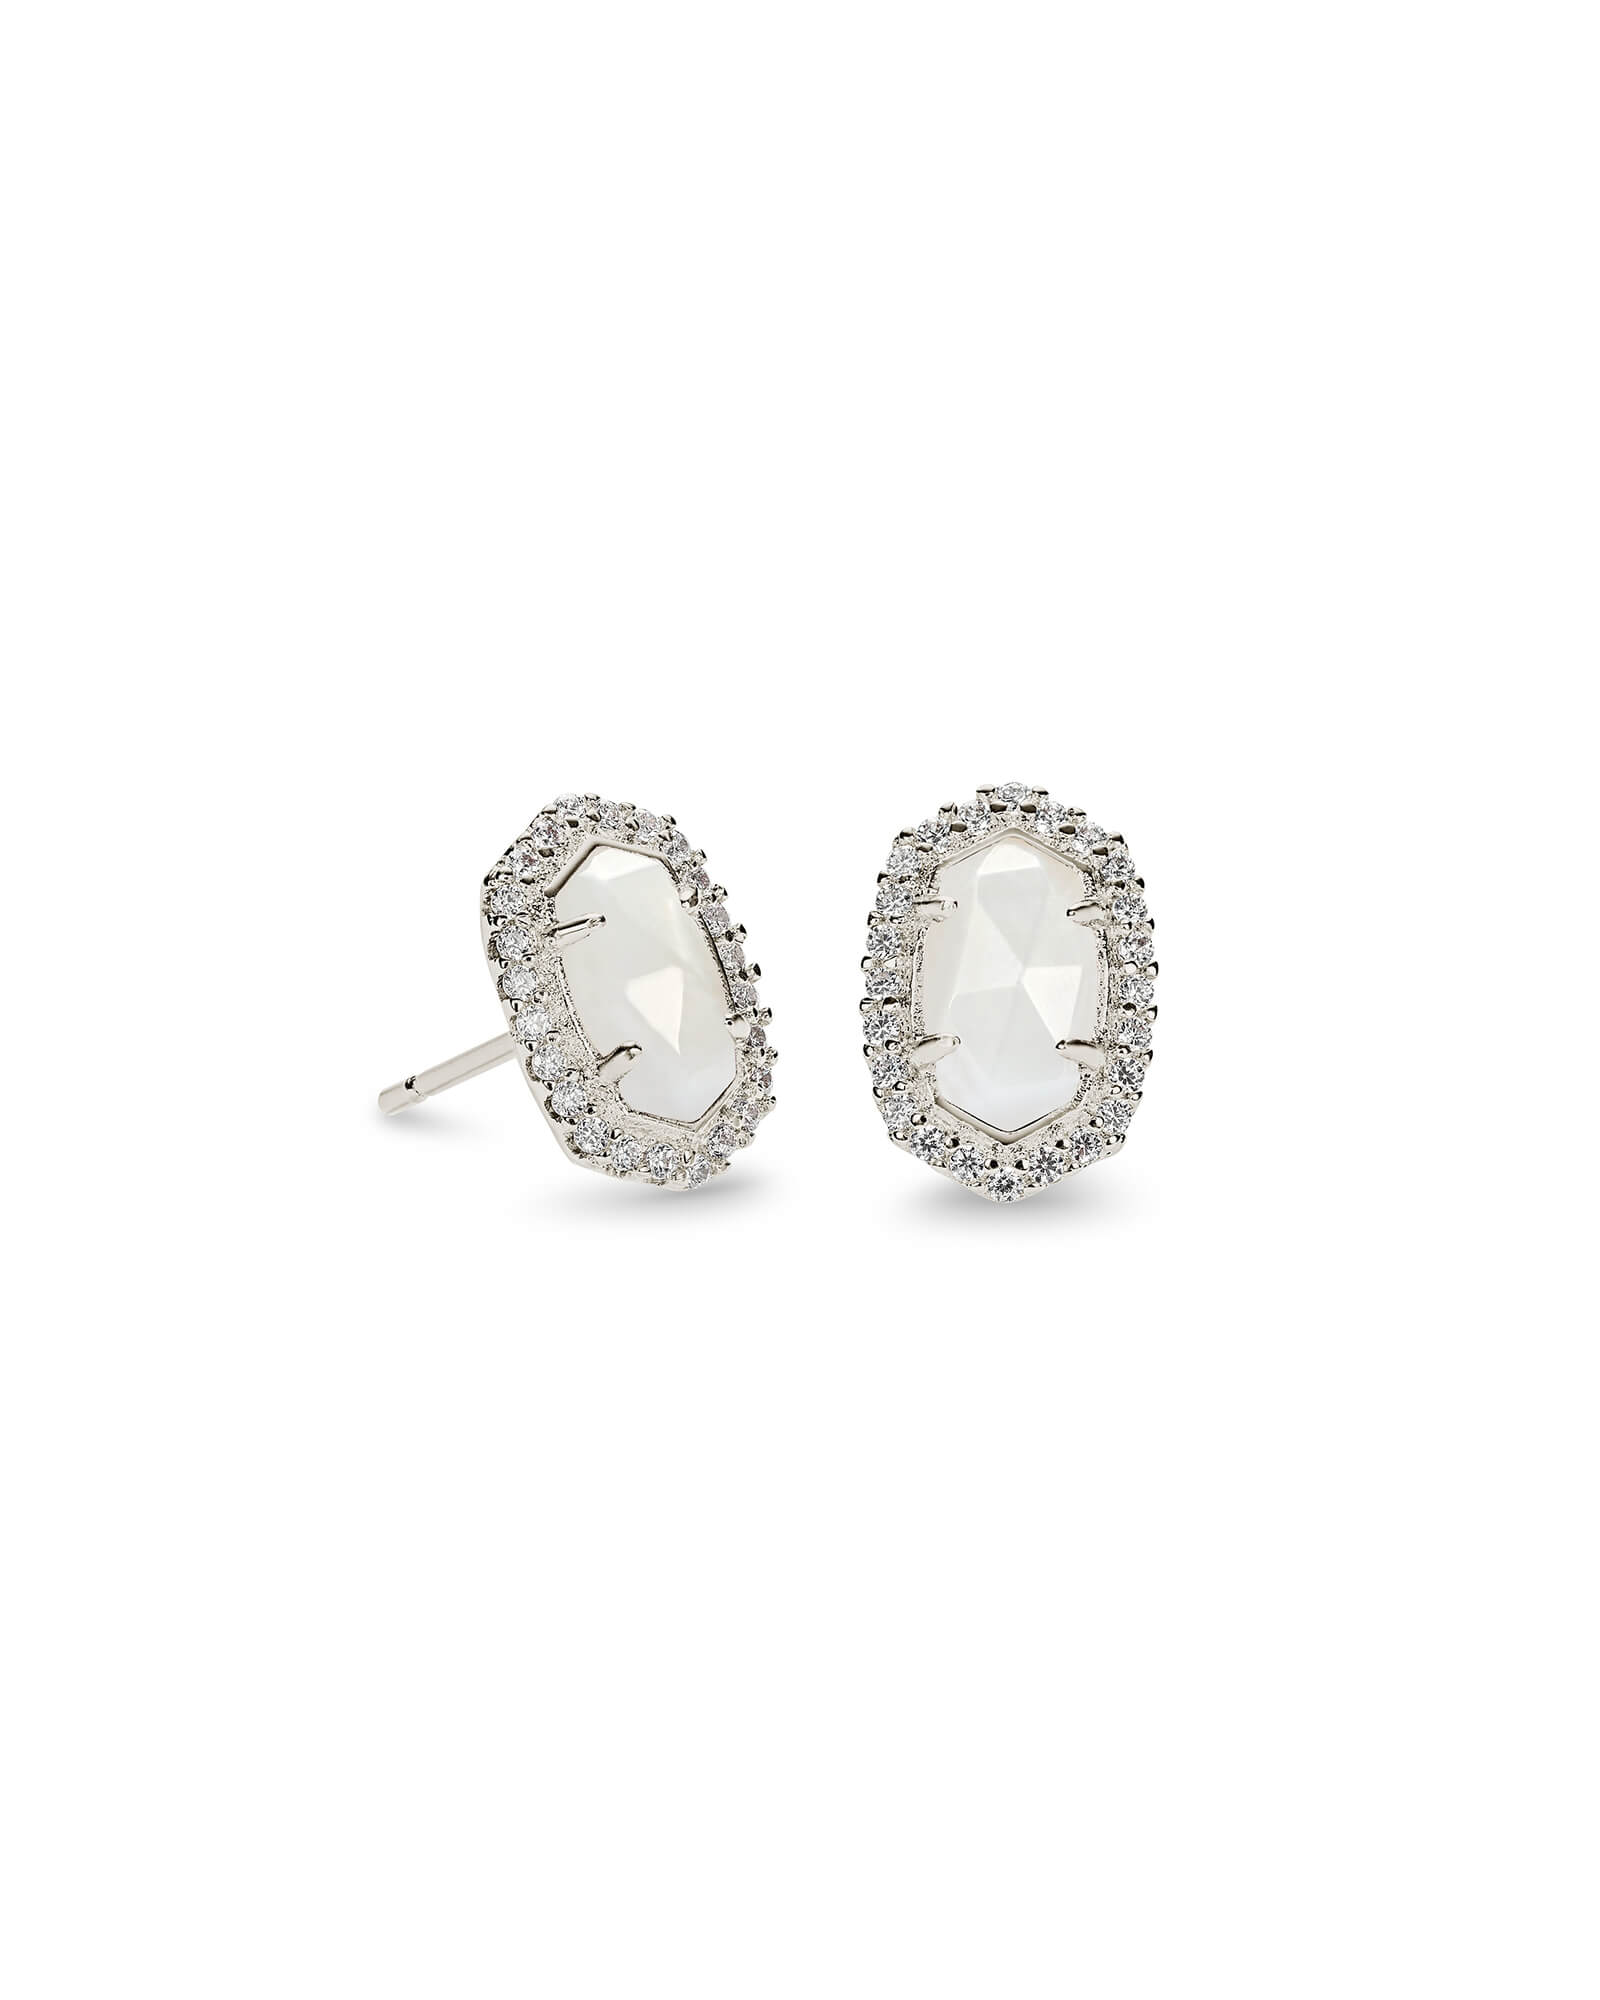 Cade Silver Stud Earrings in White Pearl